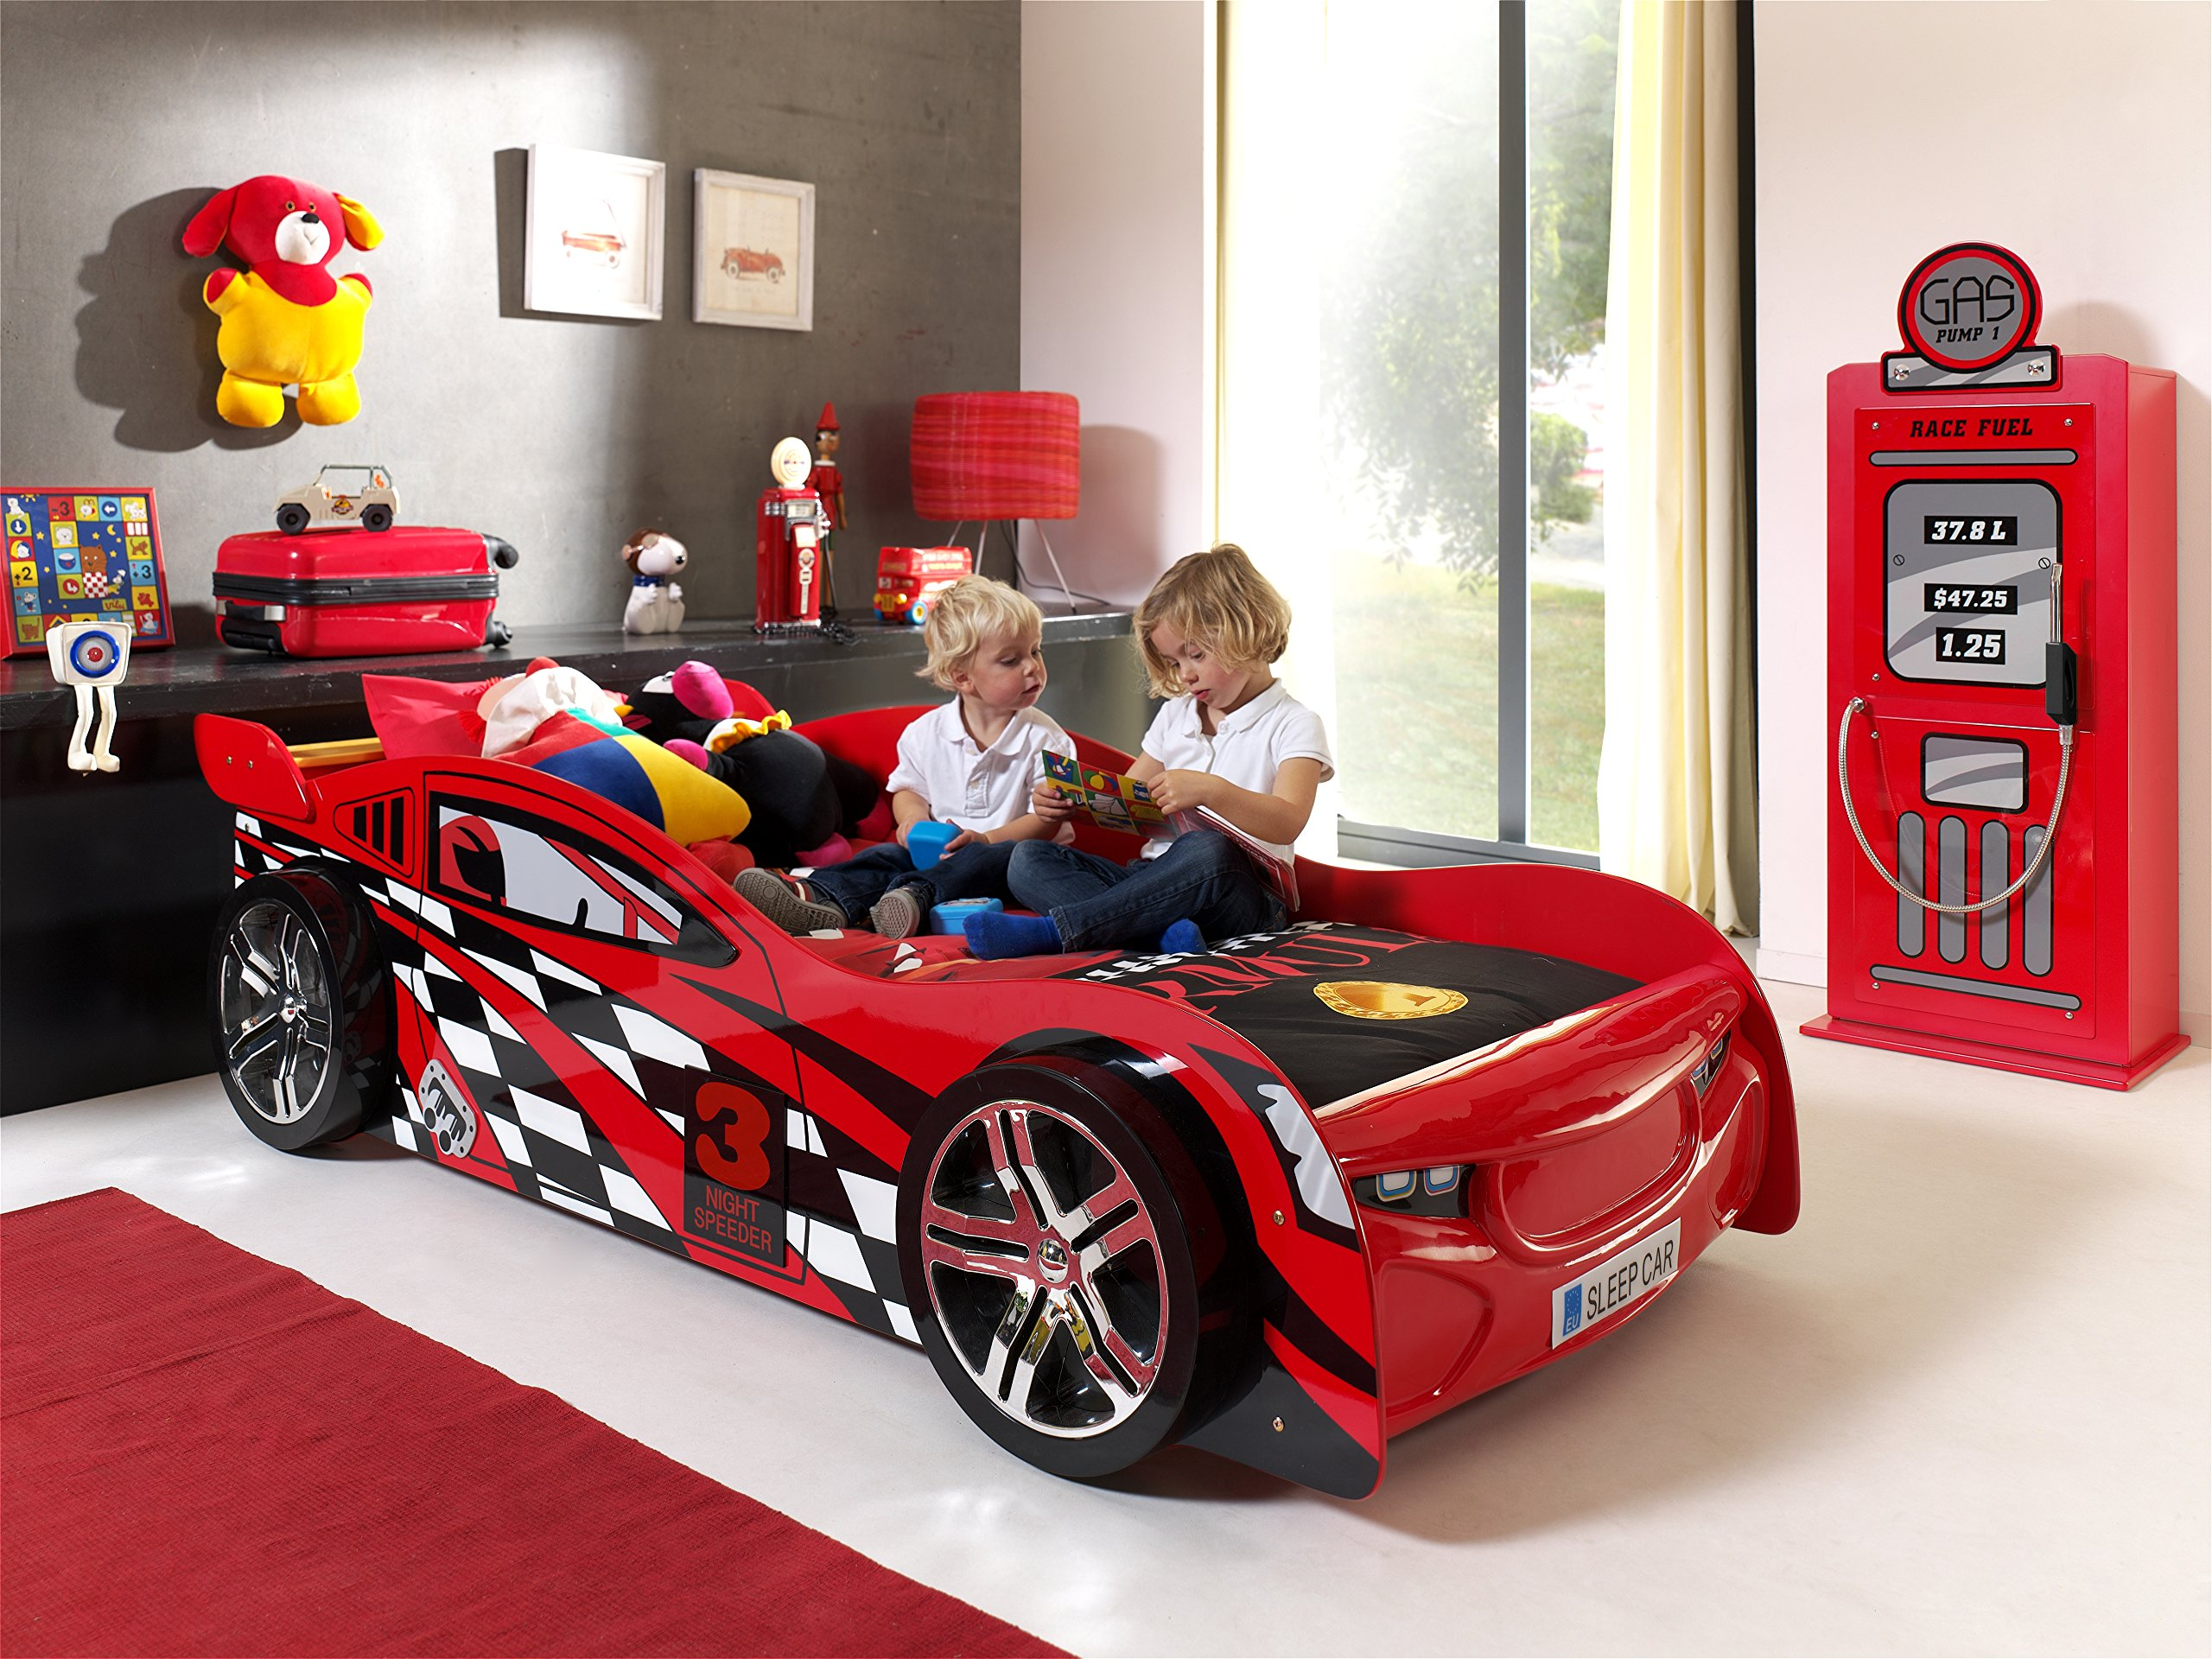 Night Speeder Car Bed with Slatted Frame Vipack Width: approximately 110 cm Height: approximately 60 cm Sleeping surface: approximately 90 x 200 cm 2